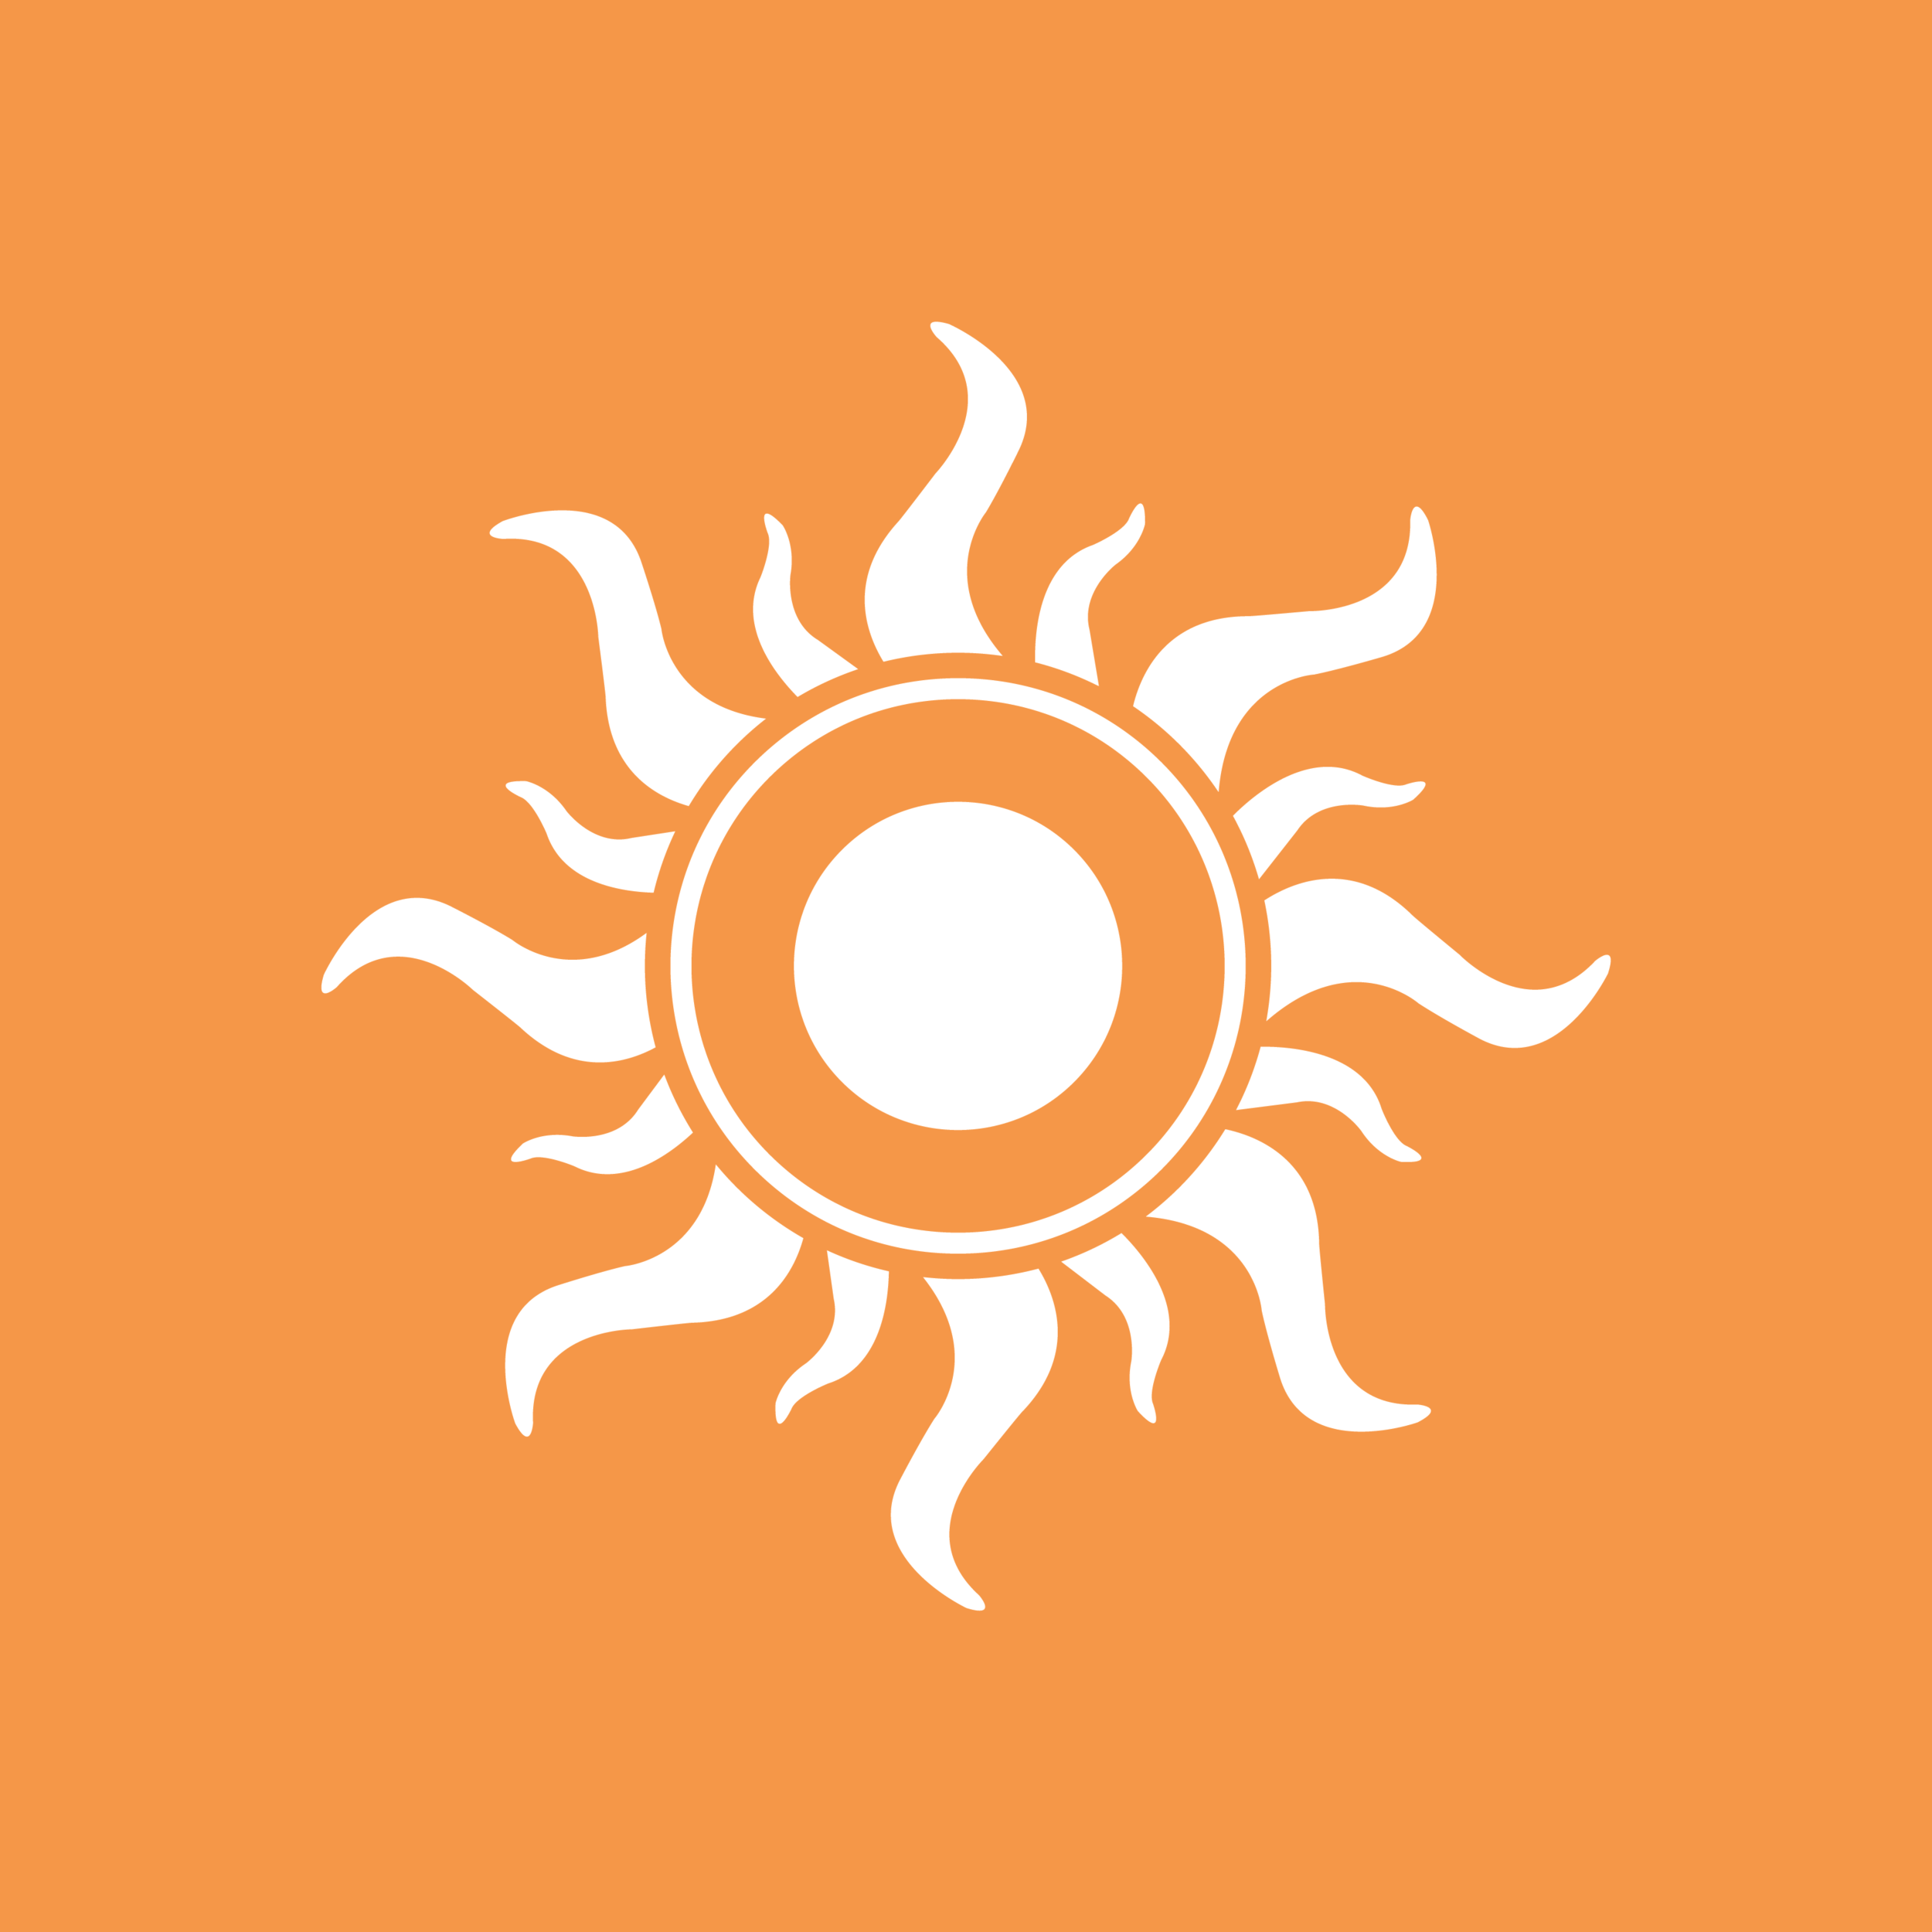 MKB_white_on_orange_icon.png